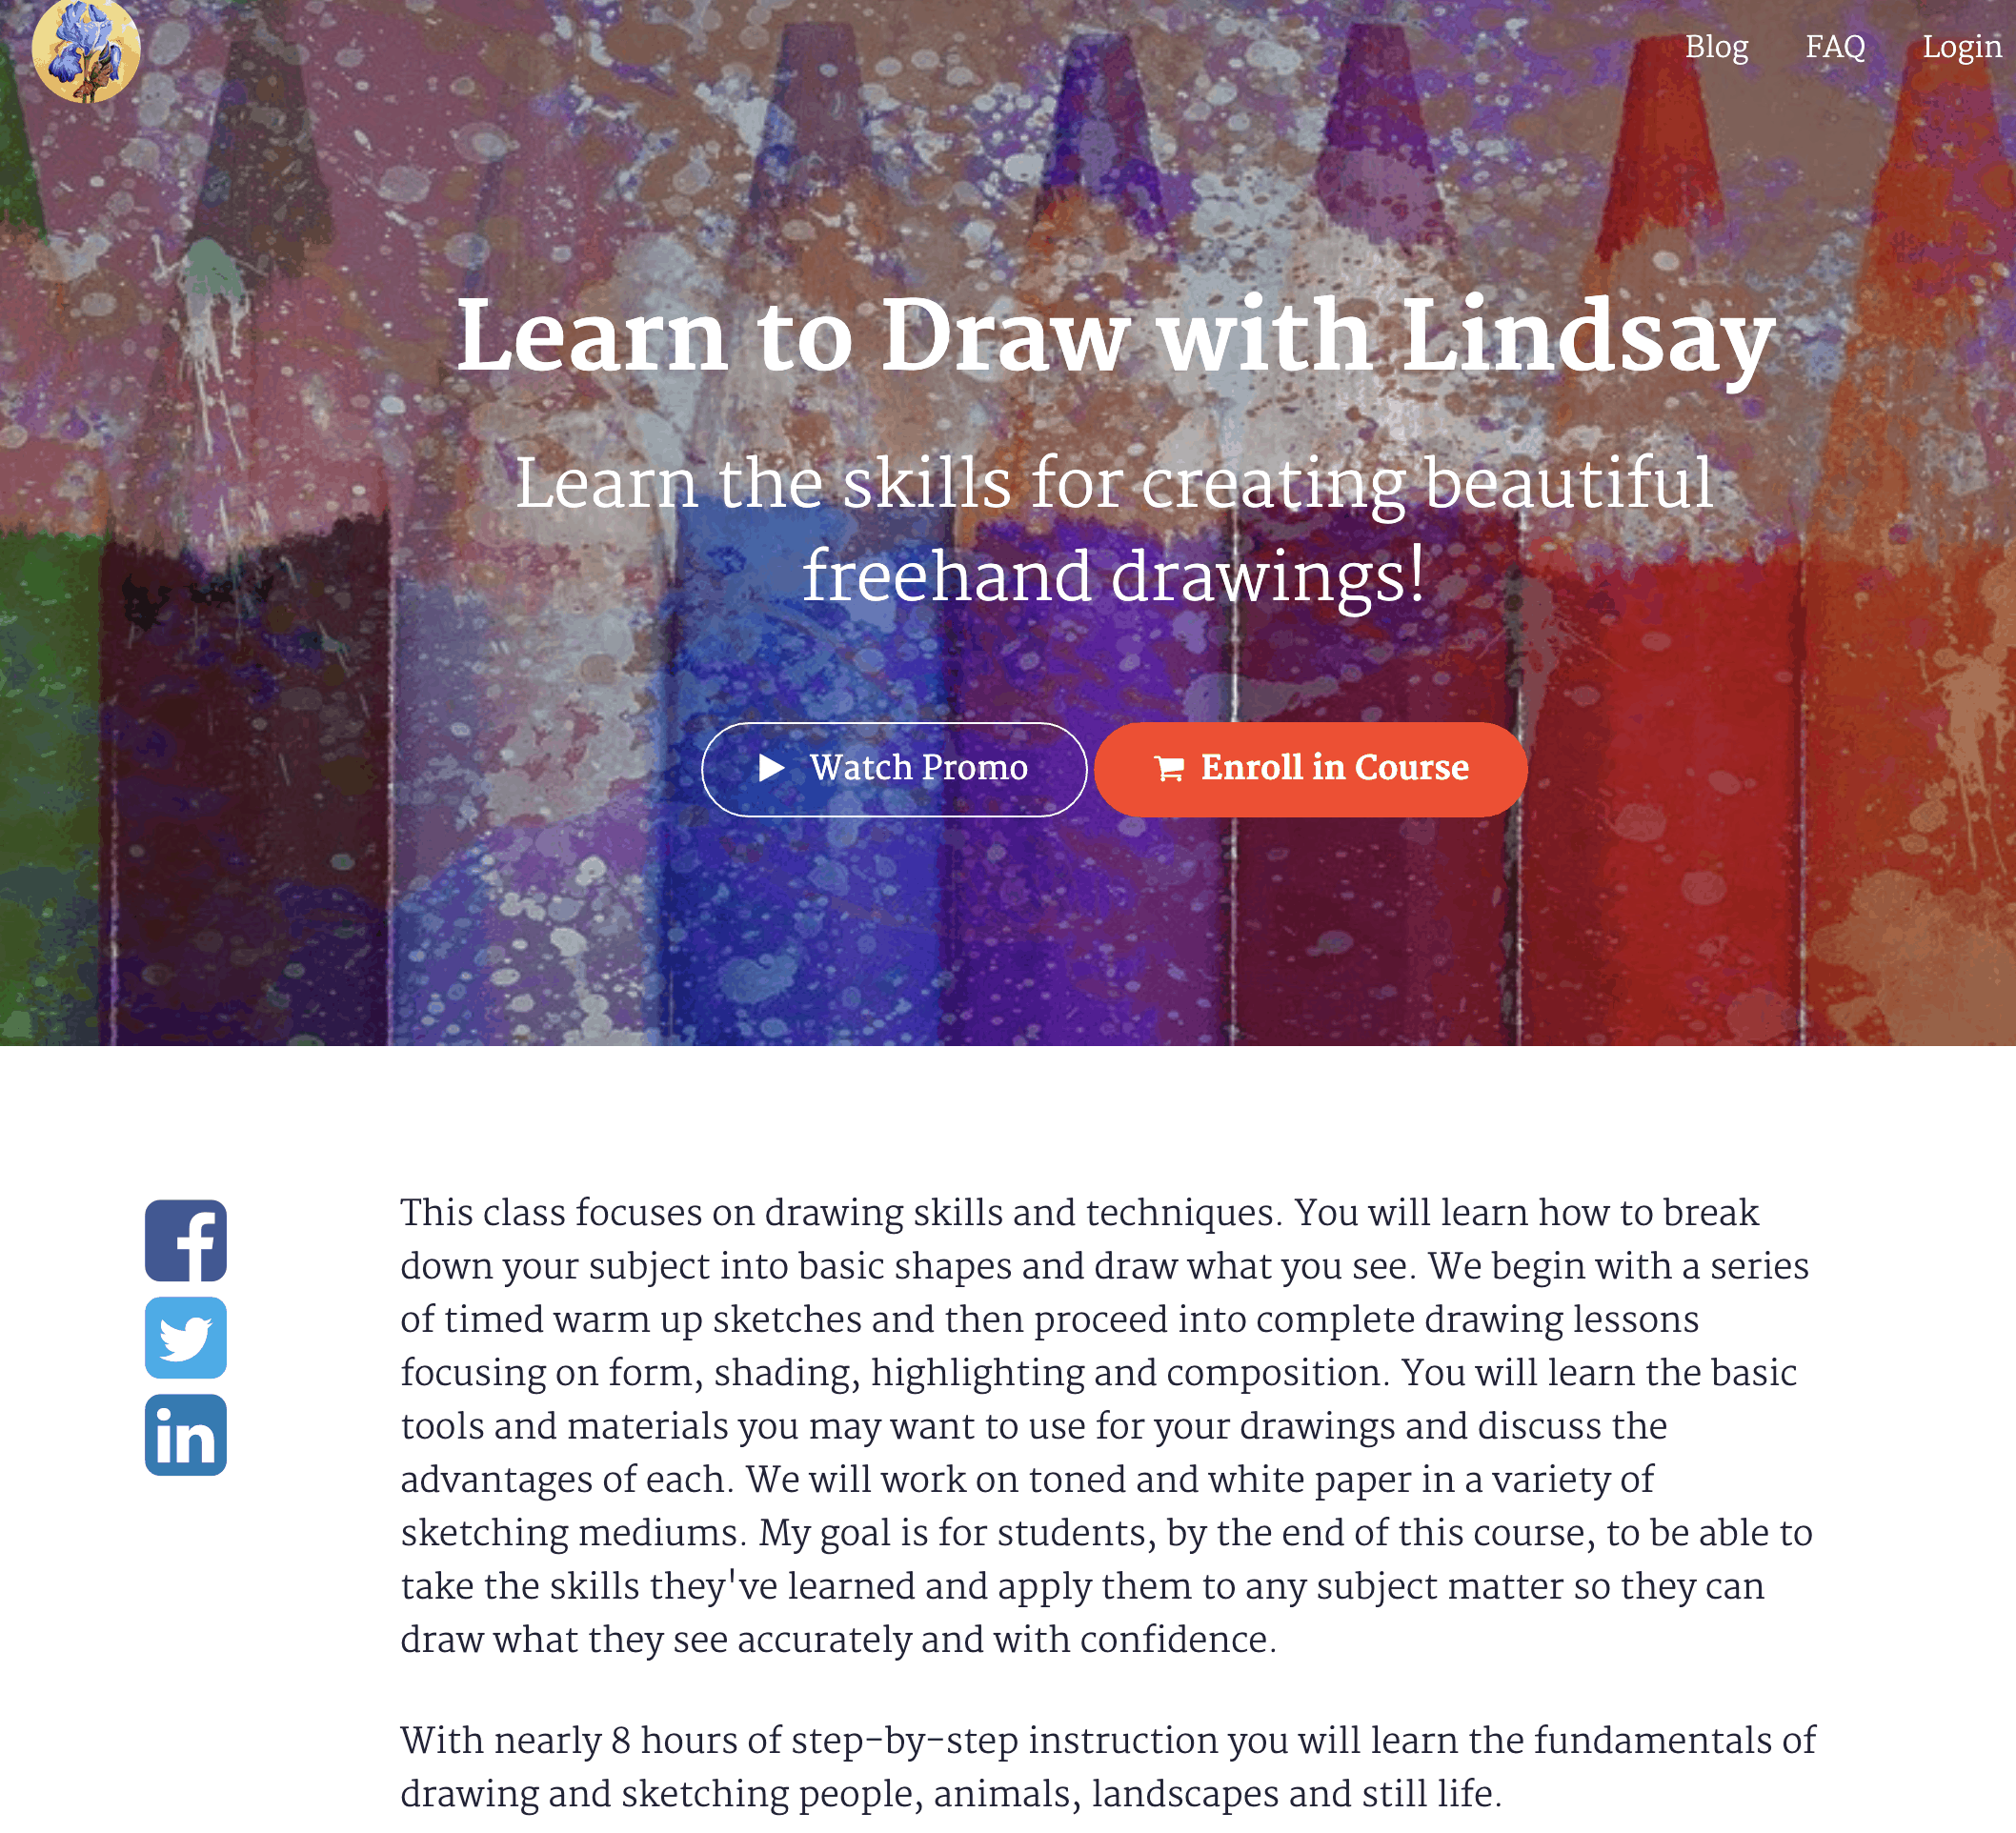 Lindsay teaches realistic pencil sketching